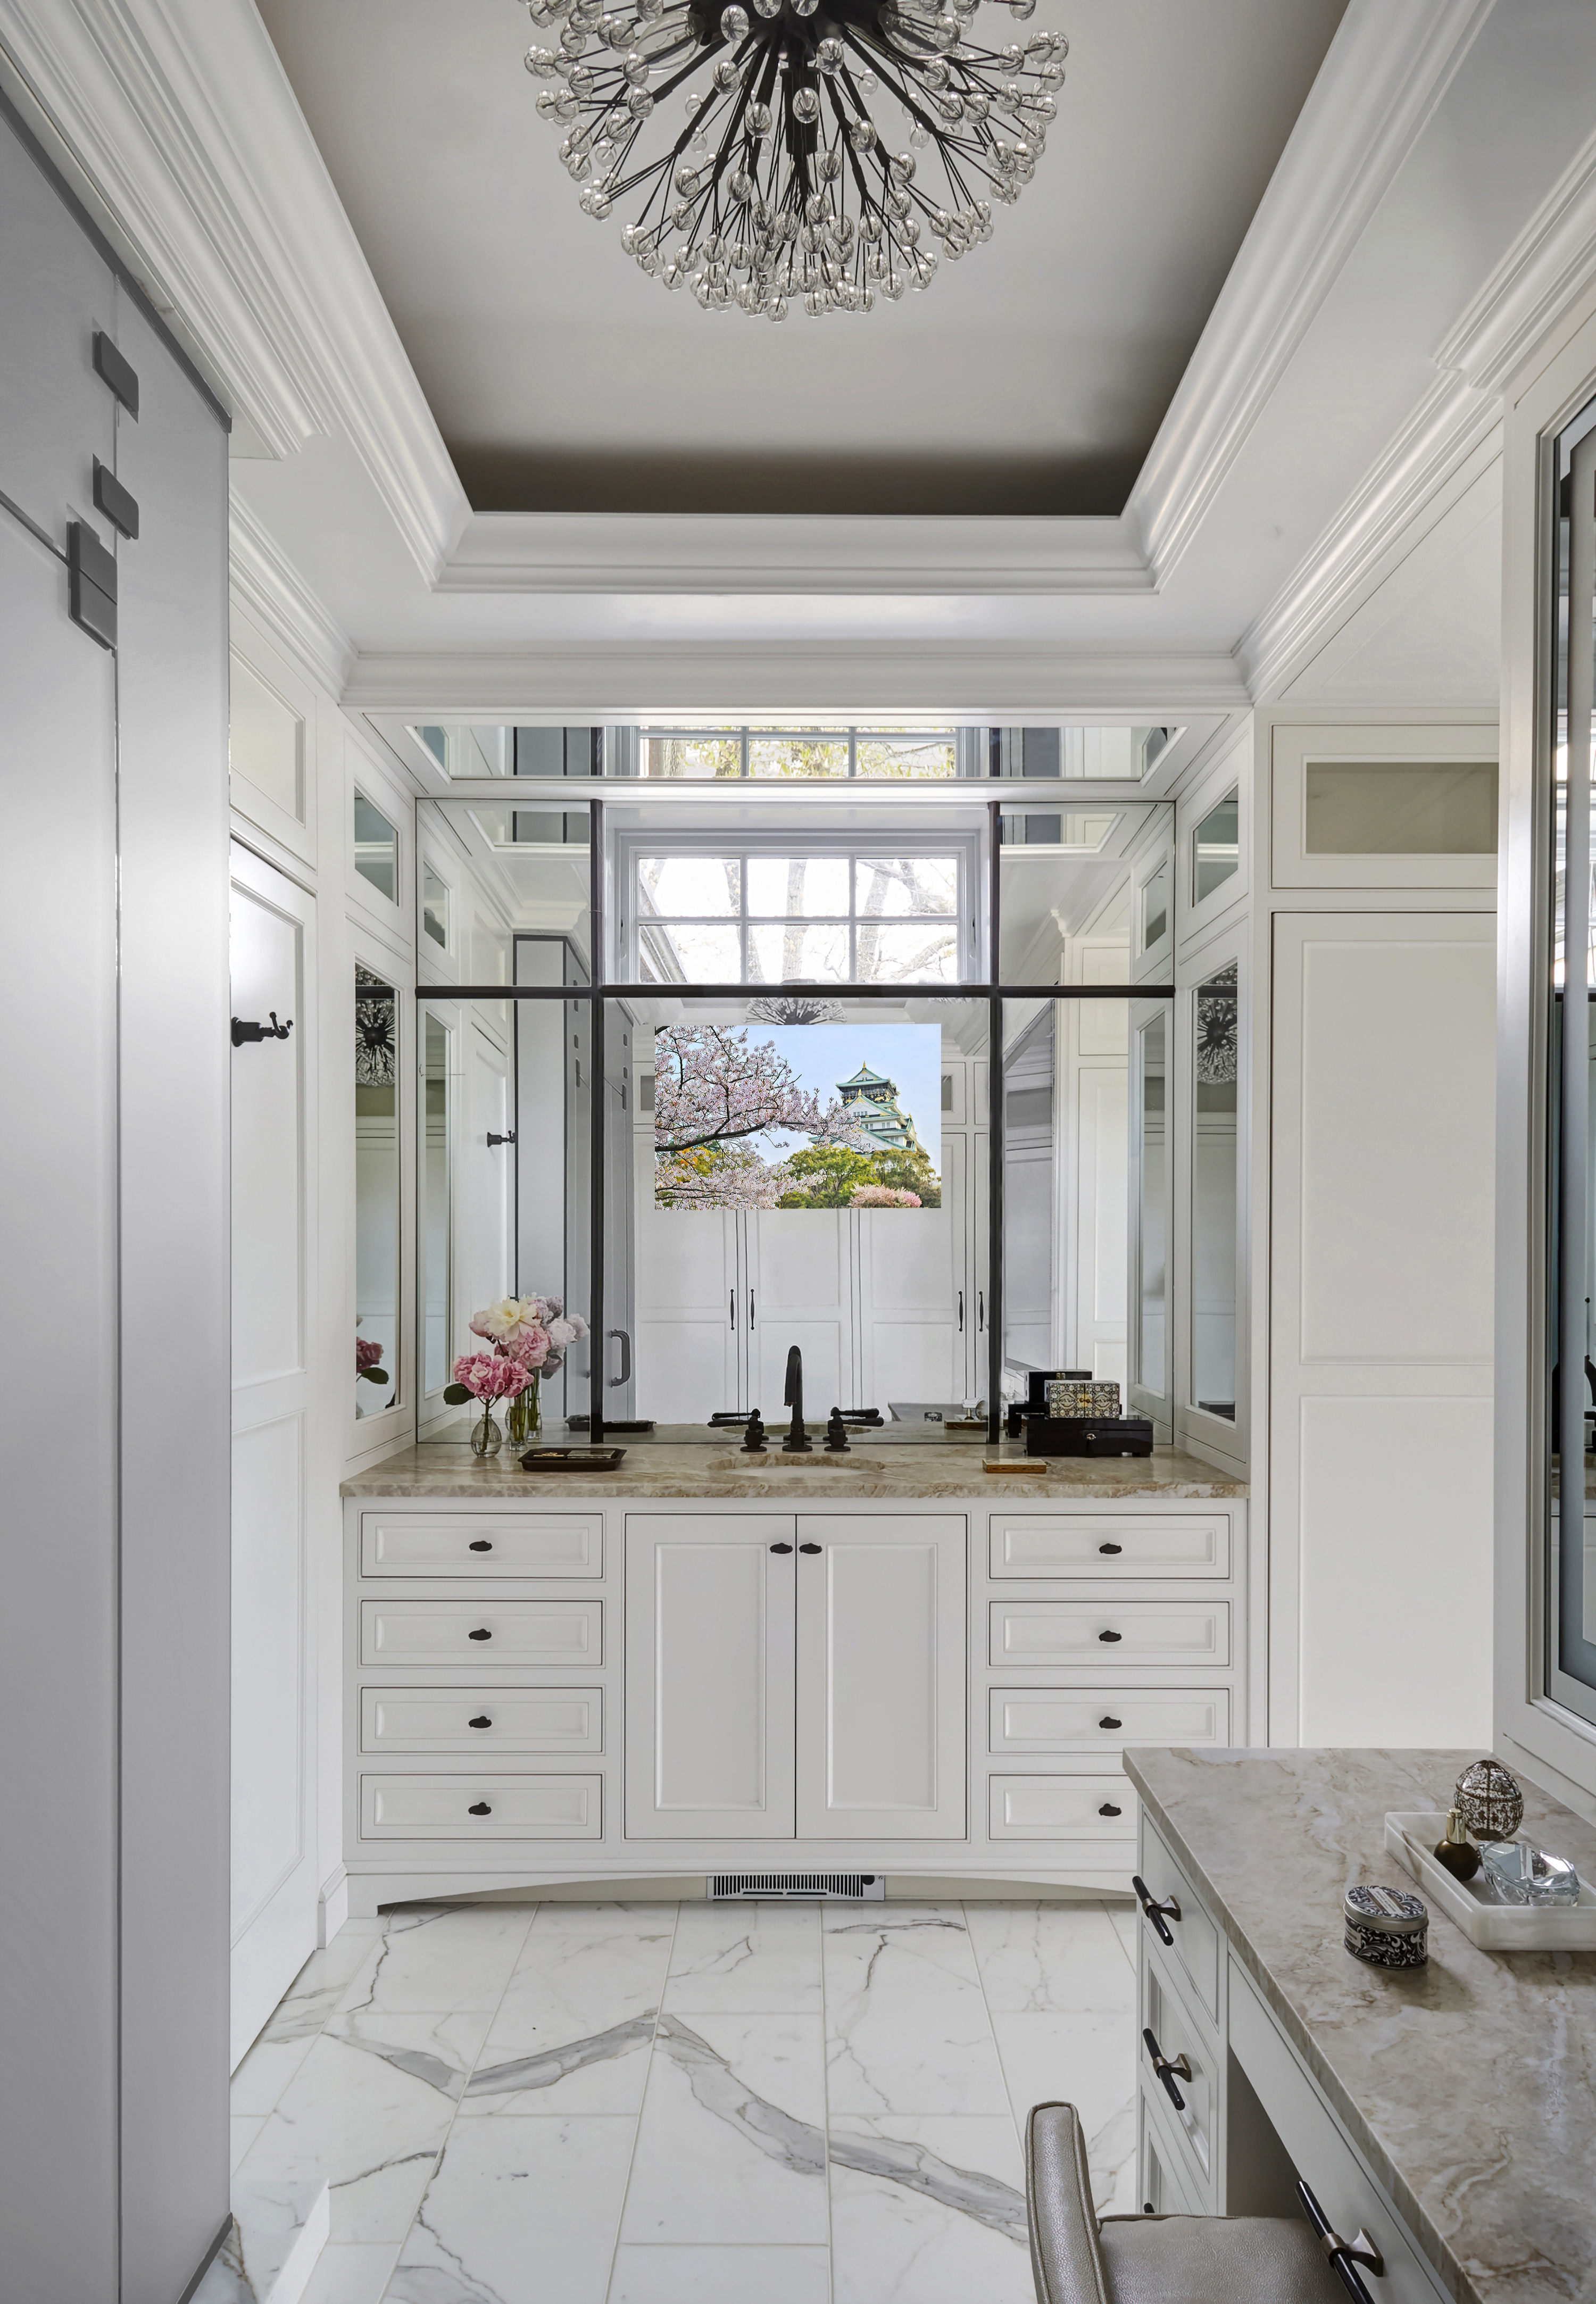 Michael Freiburger, NEWLOOK Master Bath